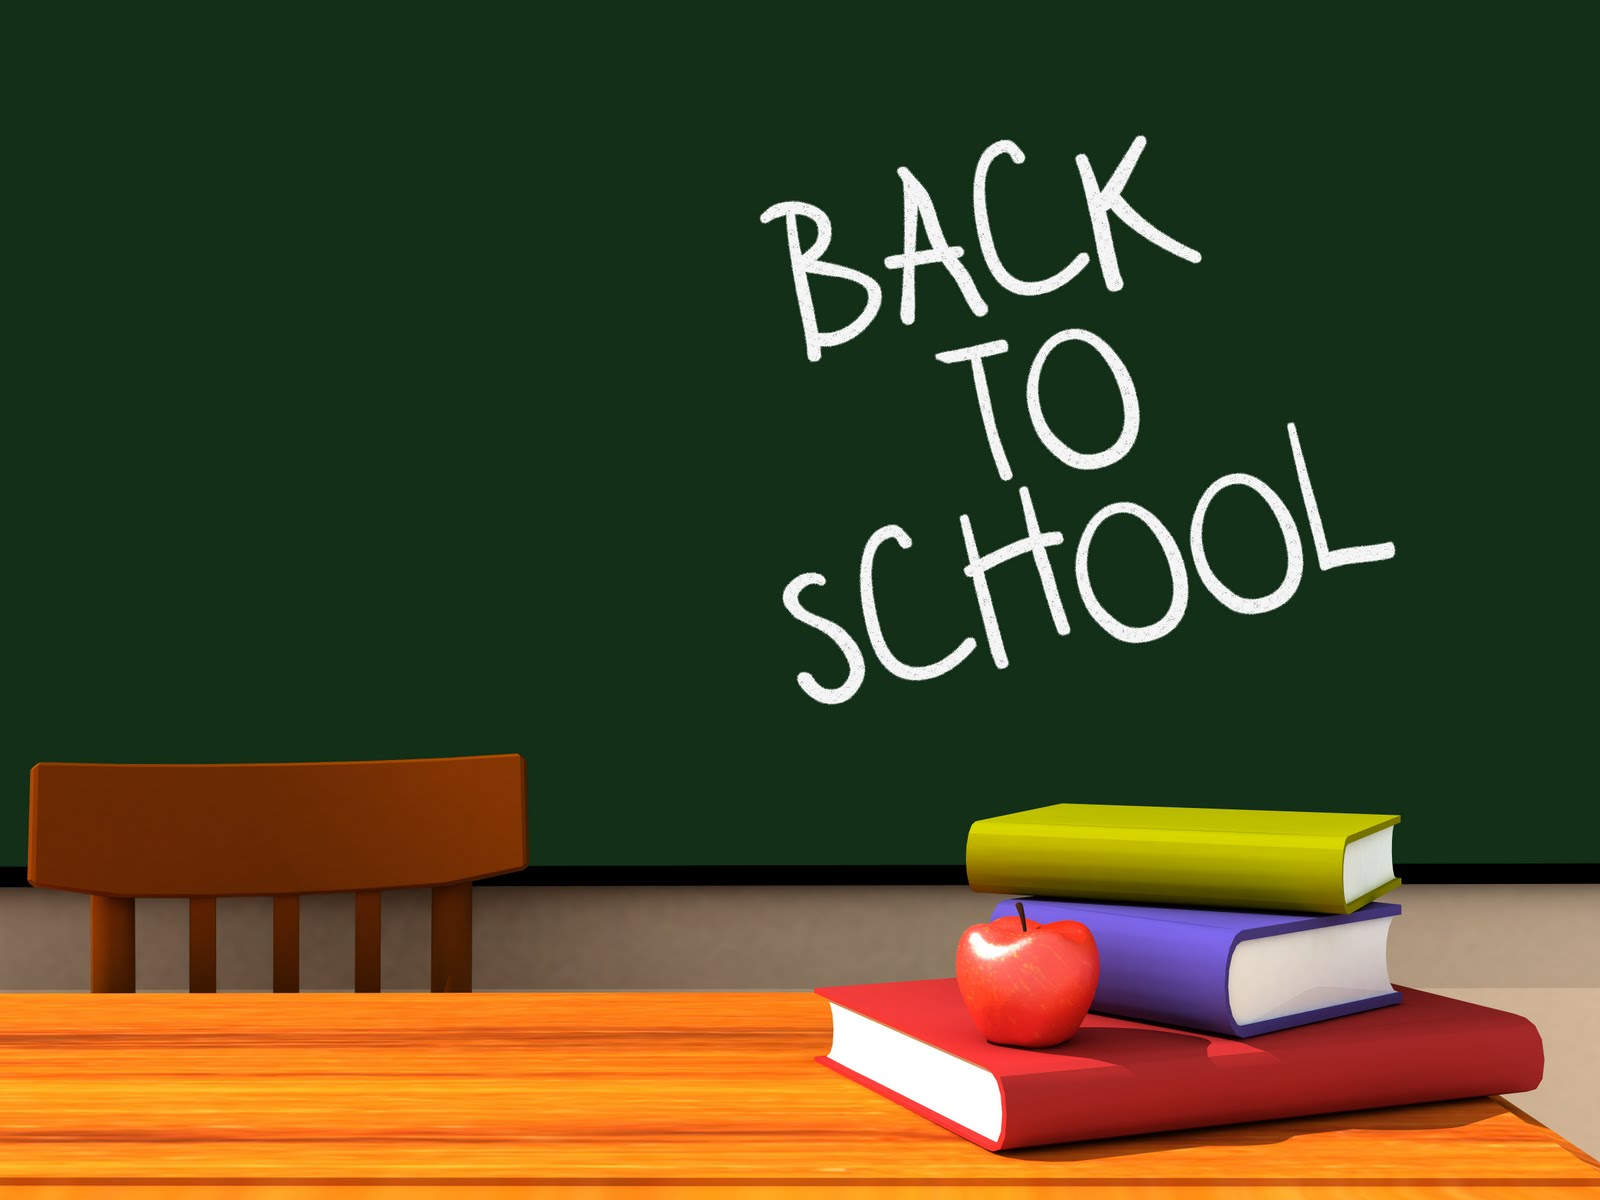 Back To School Wallpaper Hd Is Cool Wallpapers